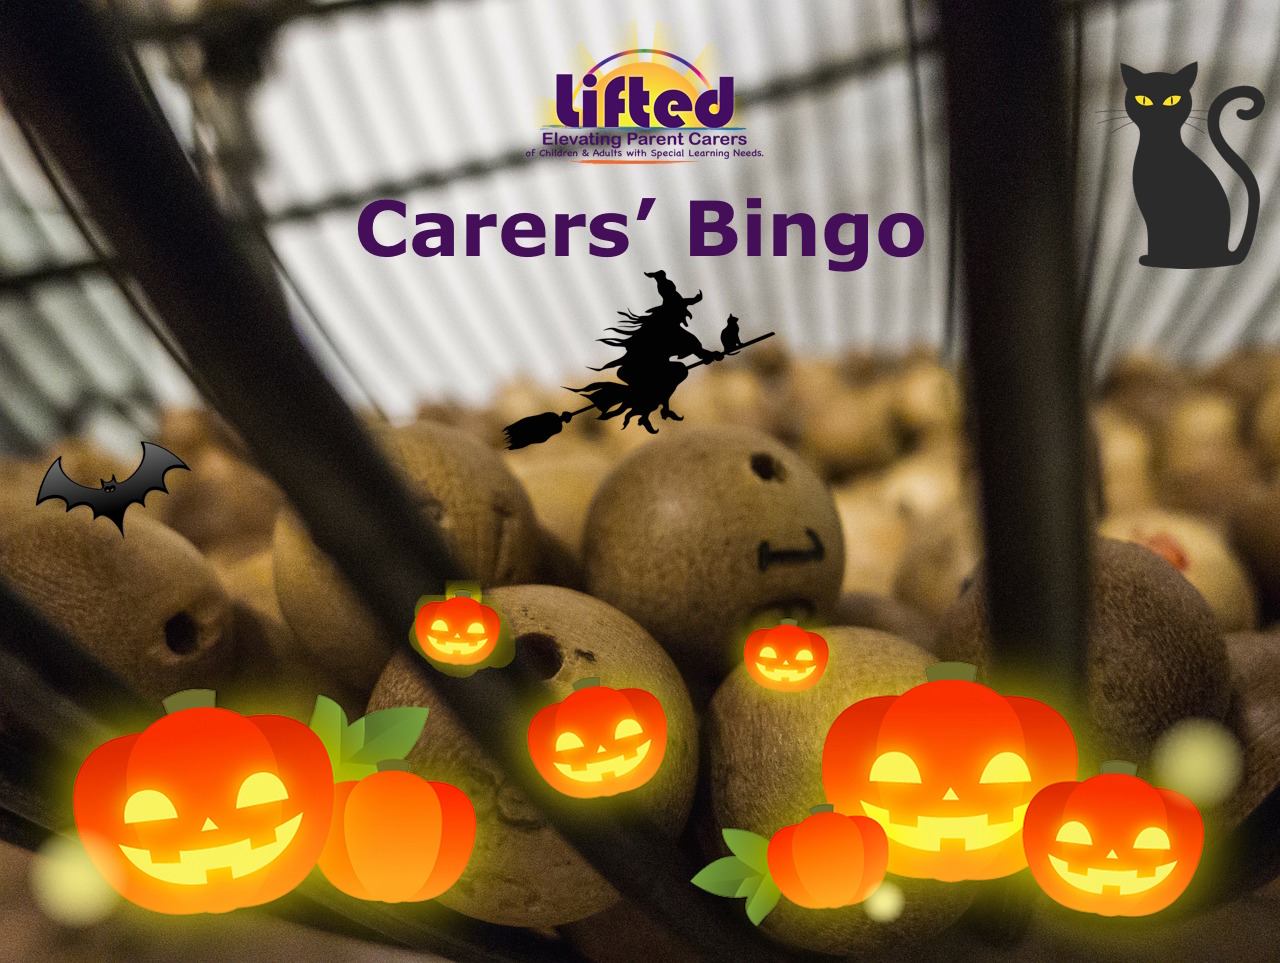 Teaser poster for Lifted Carers' Halloween Bingo 2018 | background image: bingo balls; foreground images: pumpkins, bat, witch, black cat | original images from pixabay.com